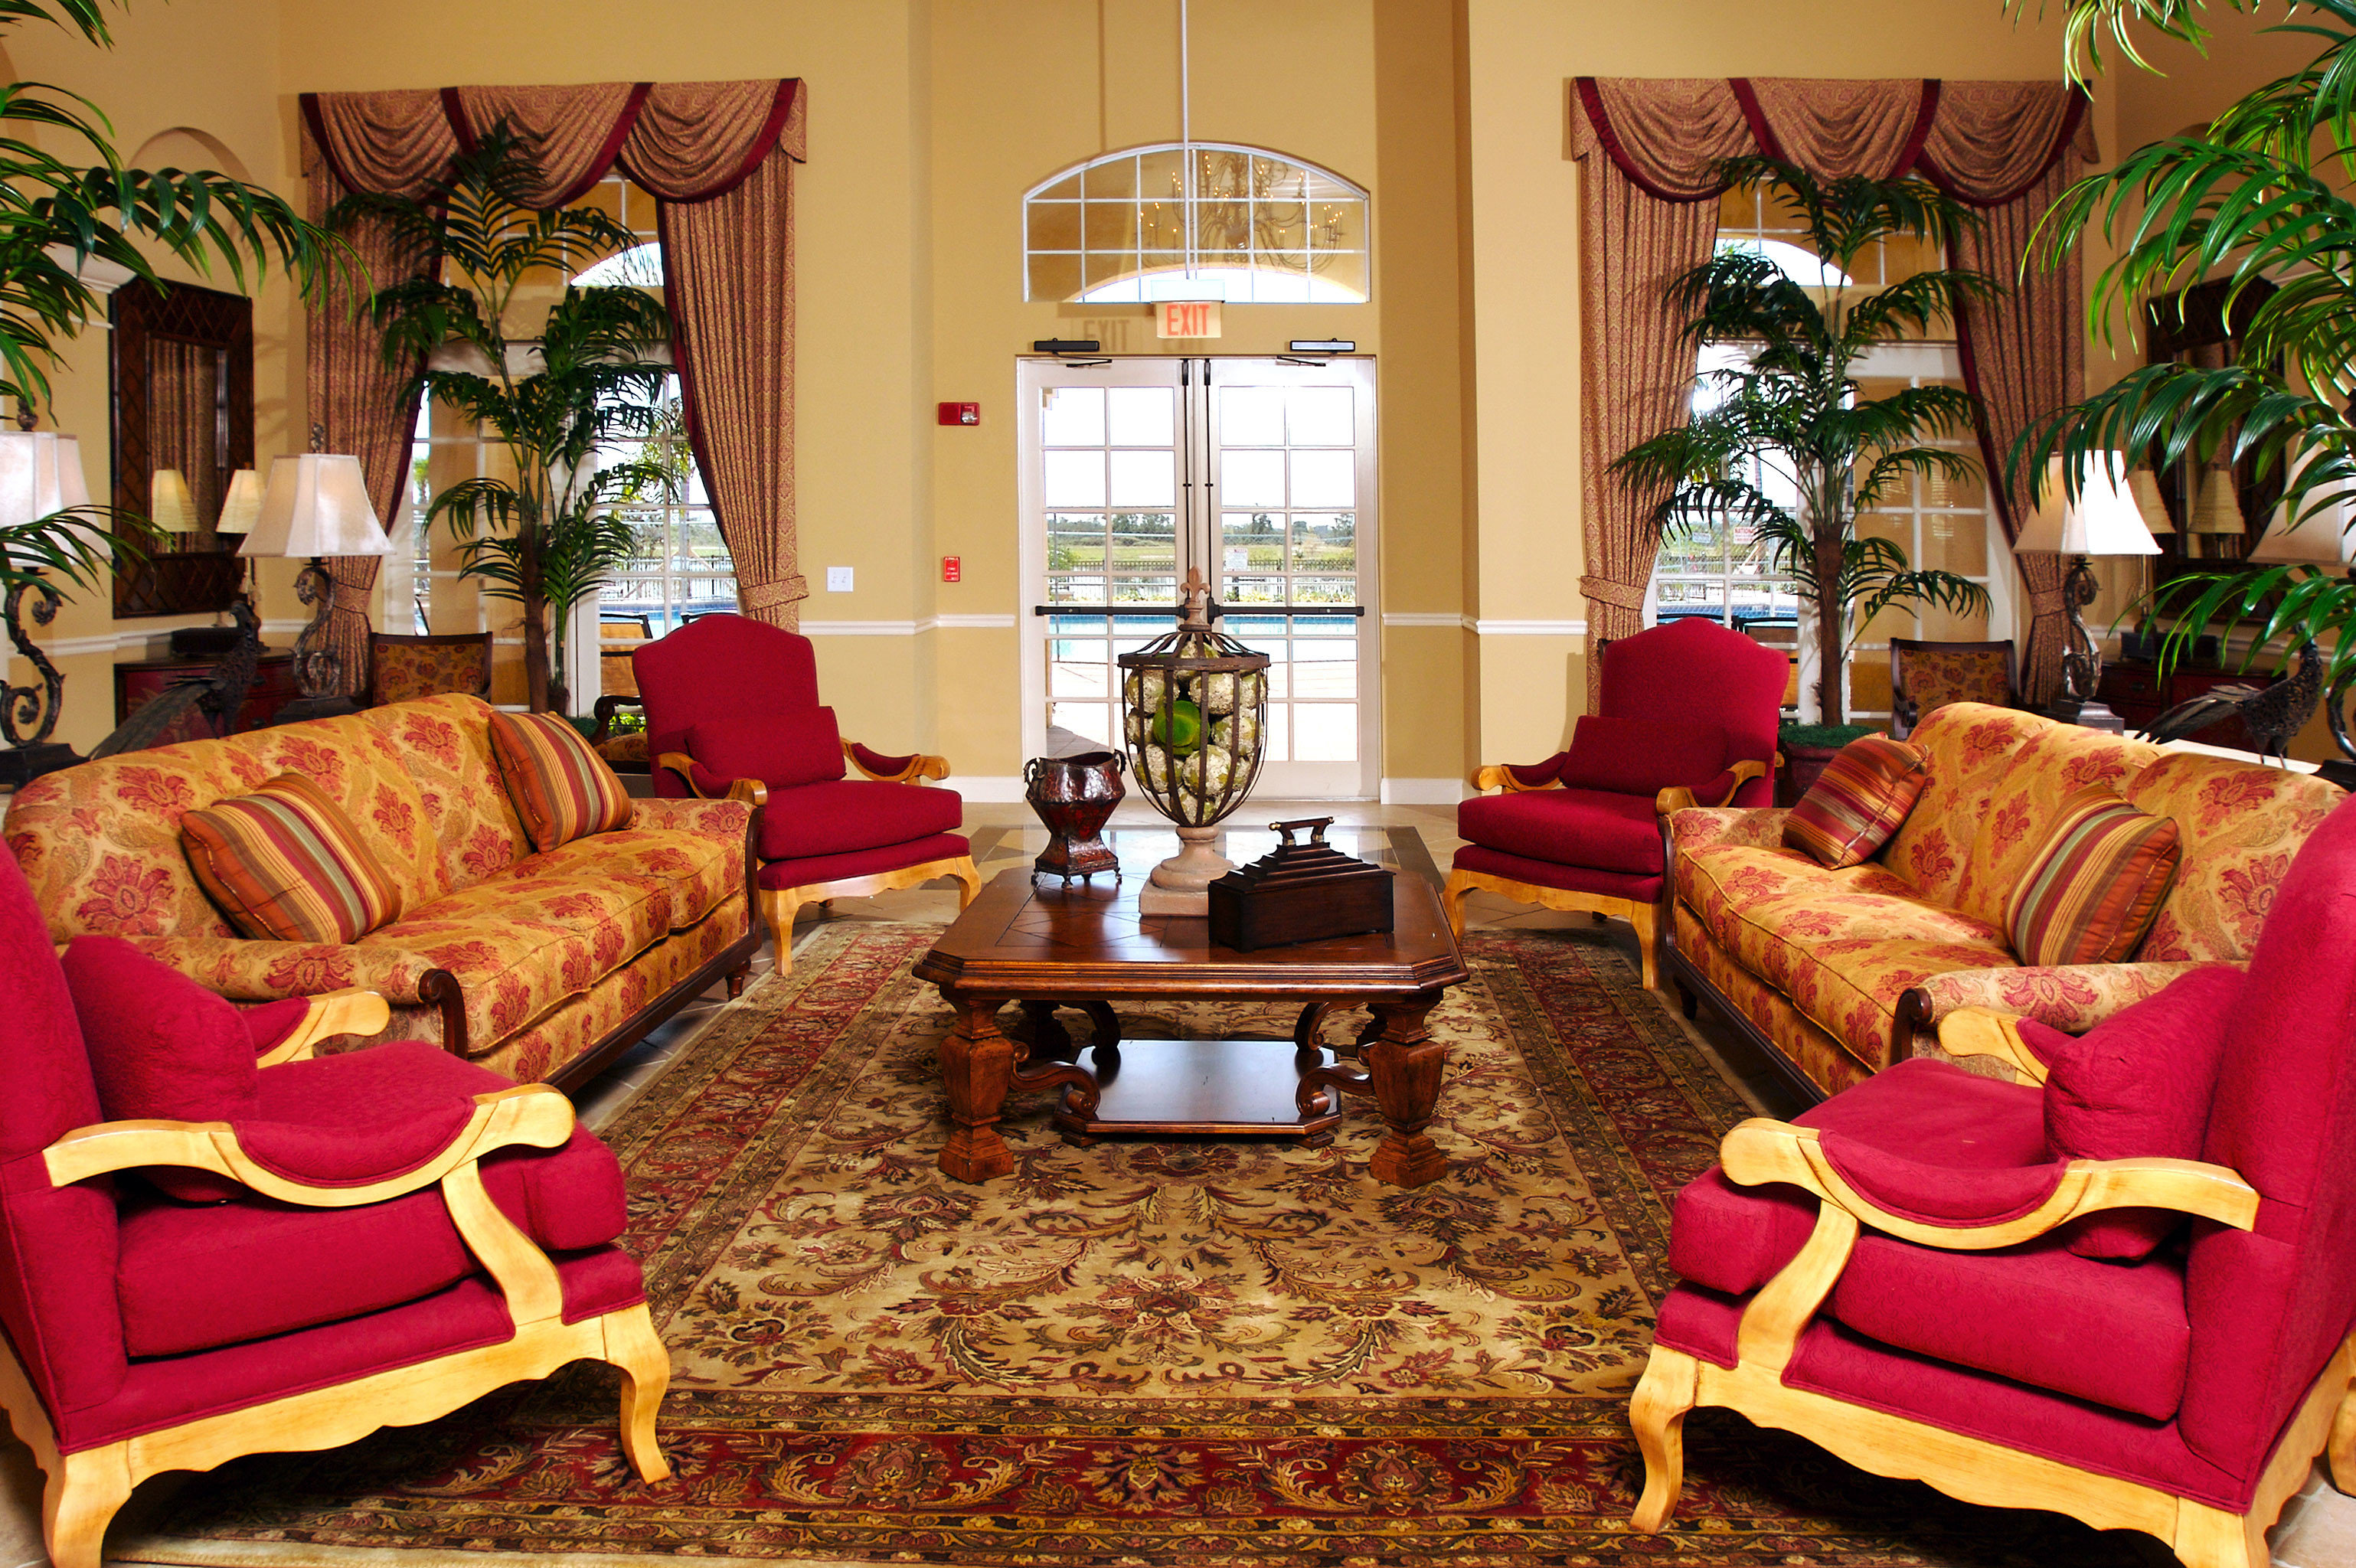 Elegant Historic Lounge Luxury sofa living room property home red porch cottage rug leather